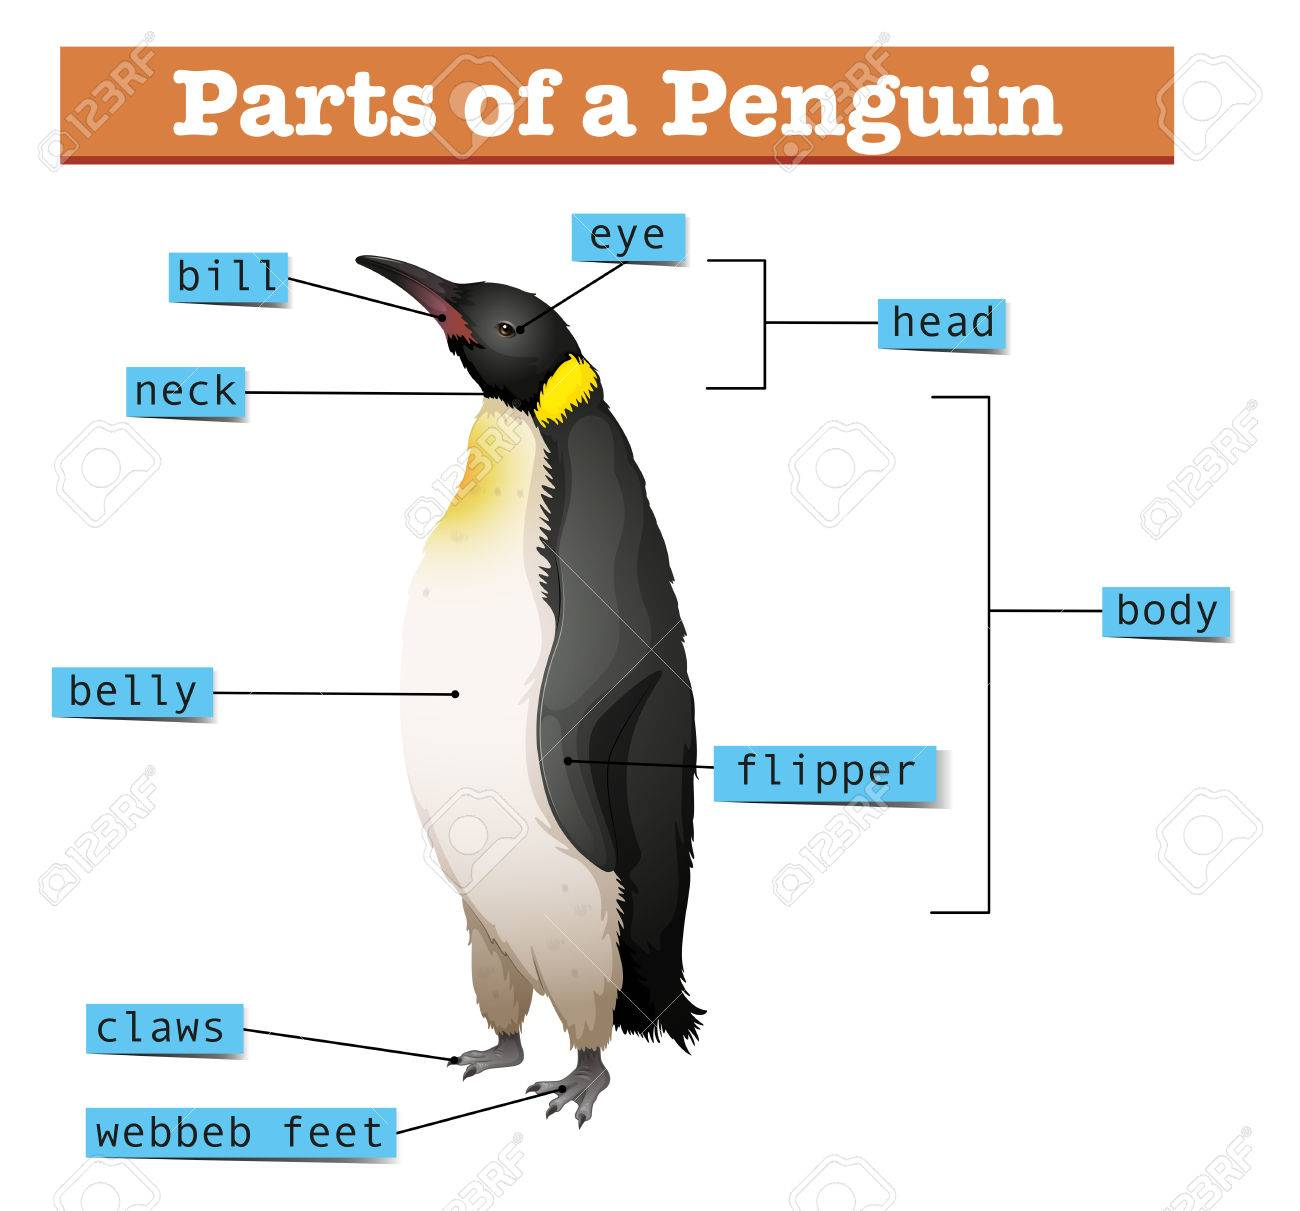 emperor penguin diagram 4 pin din minax belegung king wiring schematic showing parts of illustration royalty free cliparts anatomy